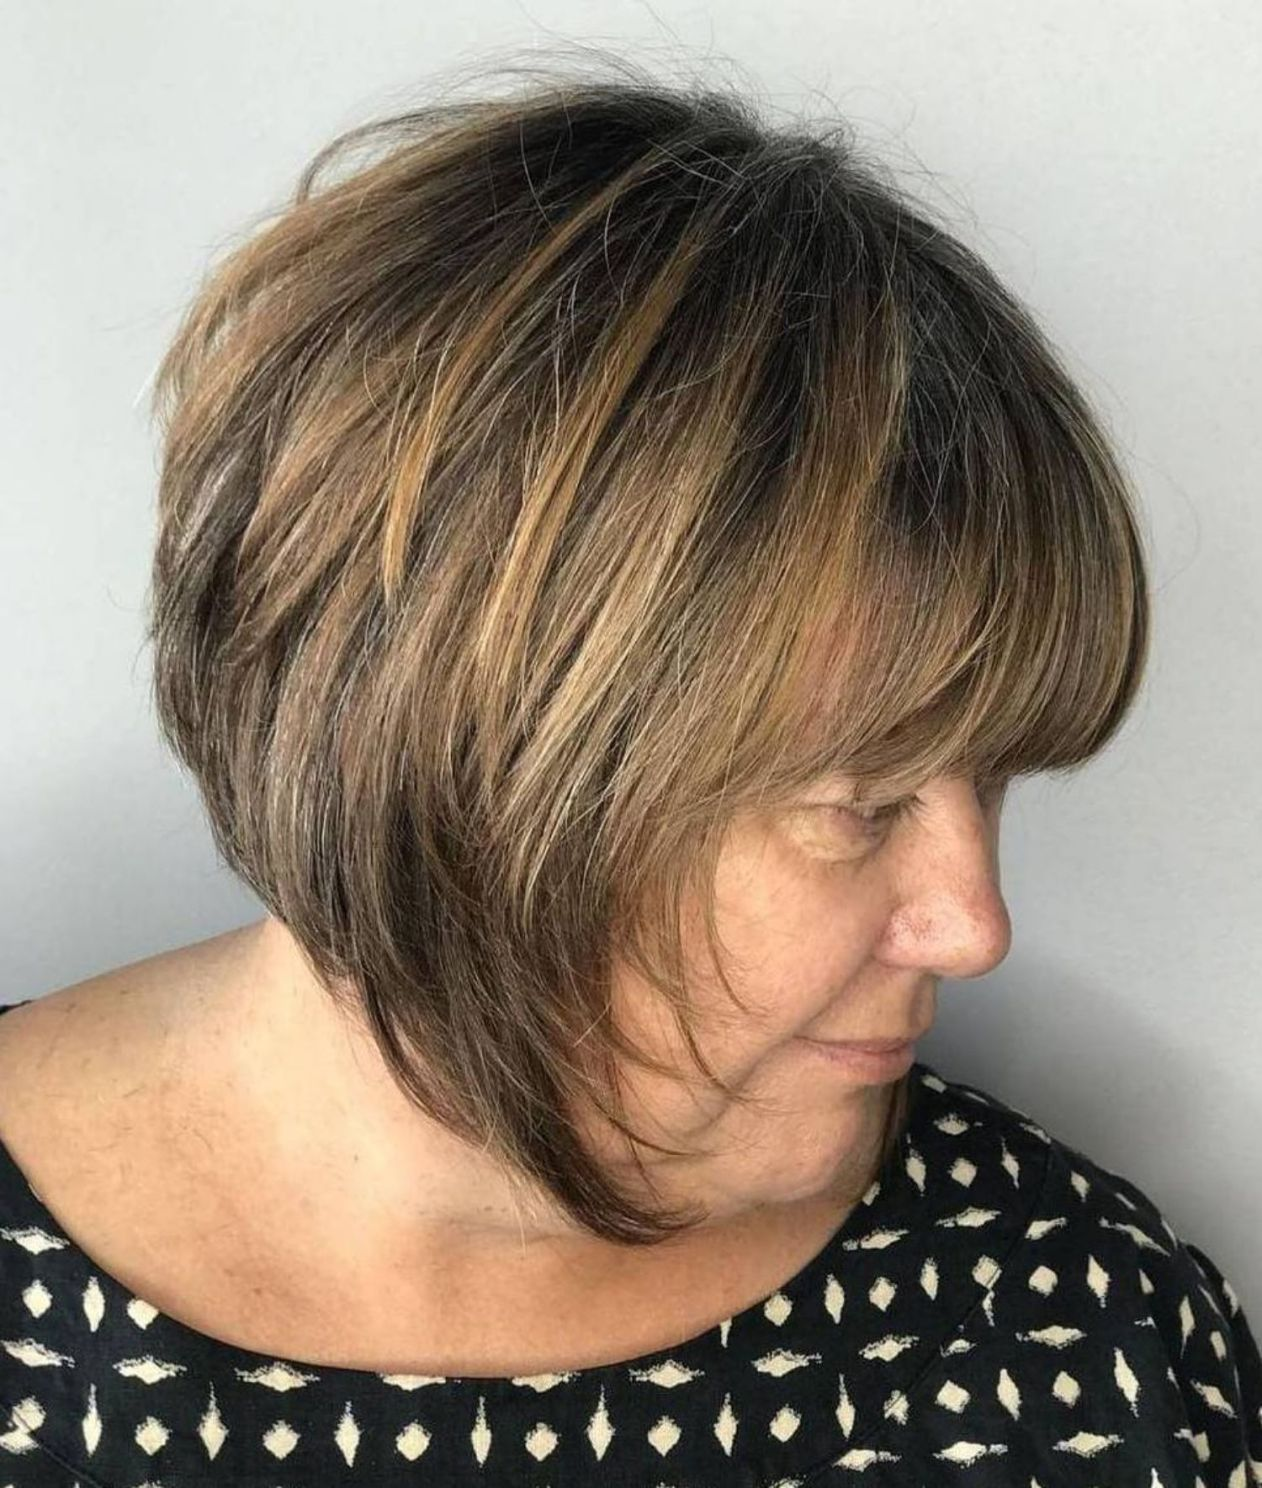 Inspiring Short Hairstyles for Older Women (Updated 2021) fdf70b6af6a7d90ffba29e04ea3bc9d1